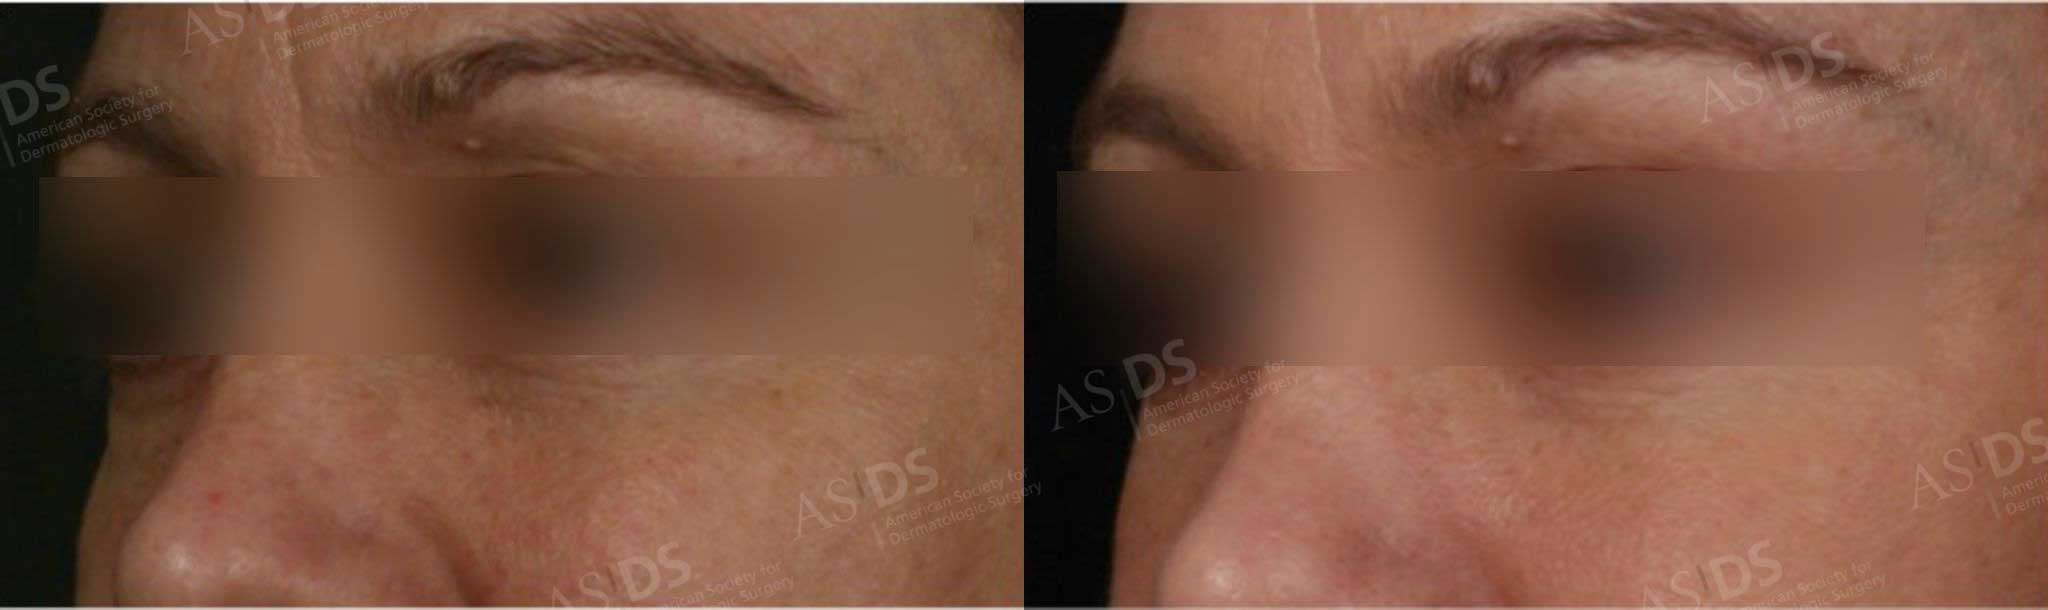 Injectable Hyaluronic Acid